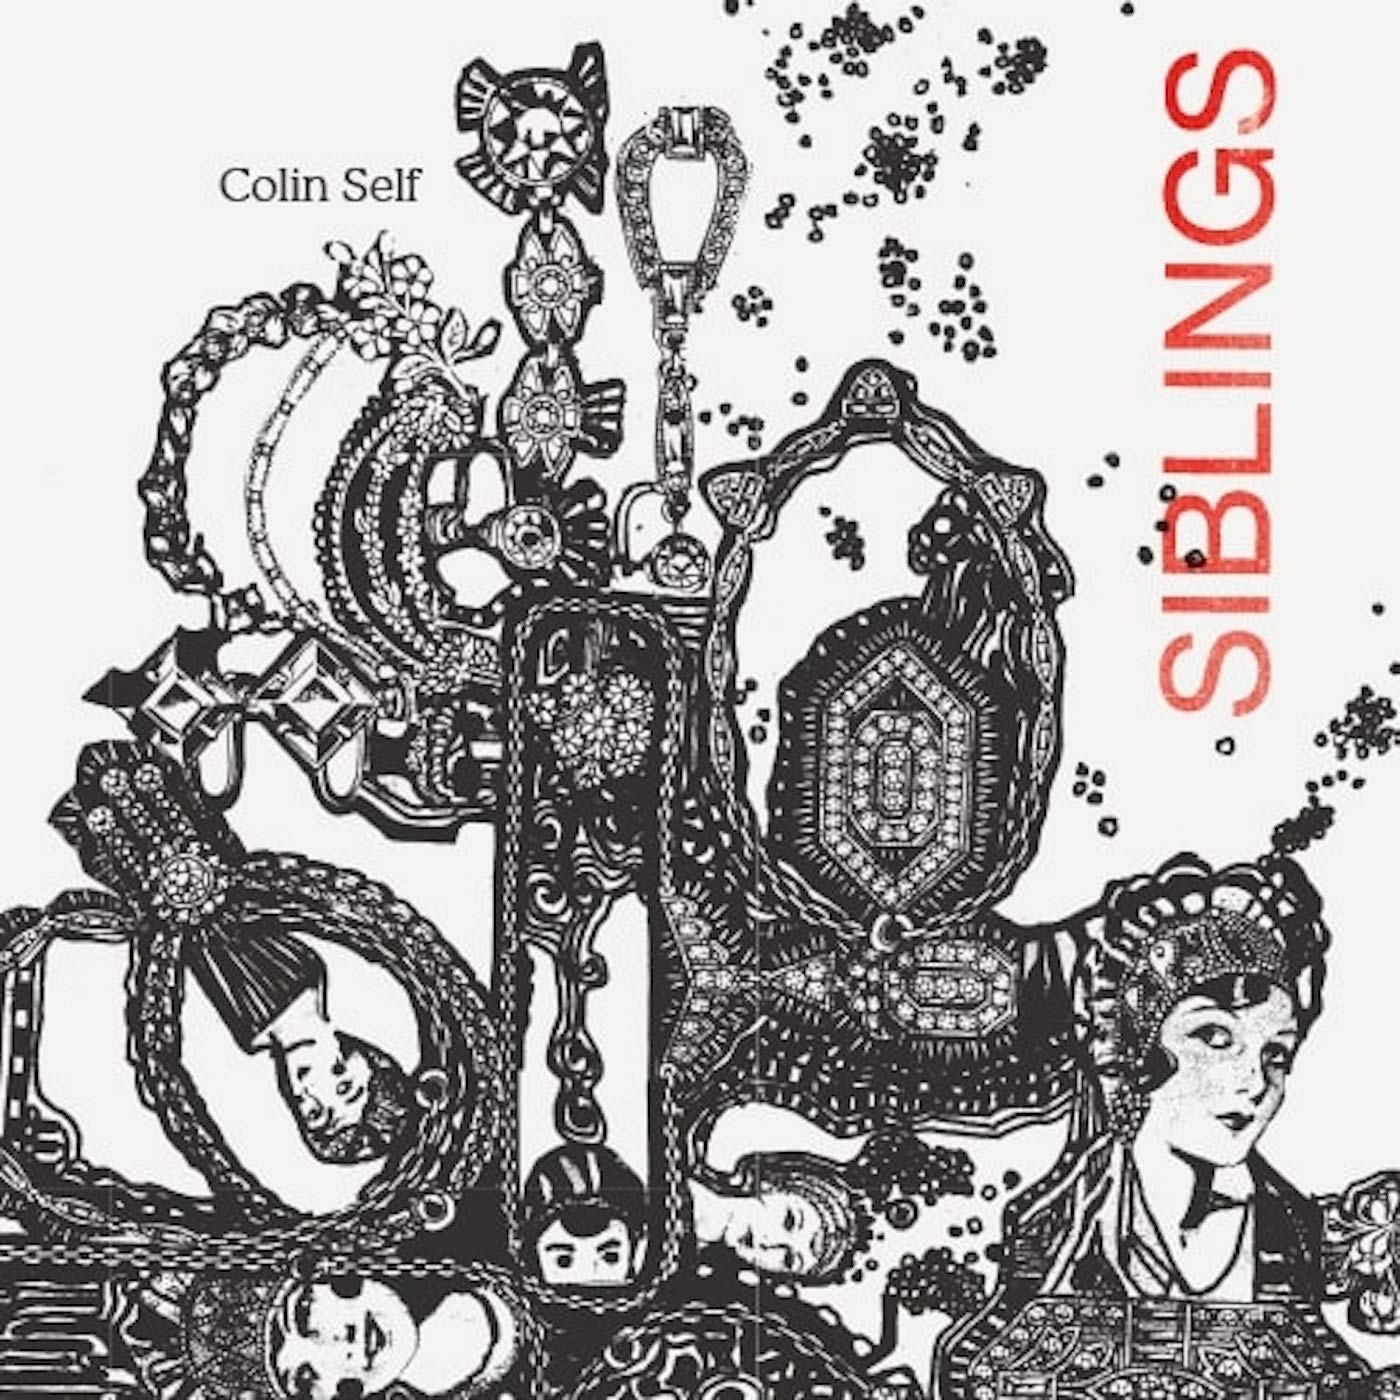 Vinilo : Colin Self - Siblings (LP Vinyl)